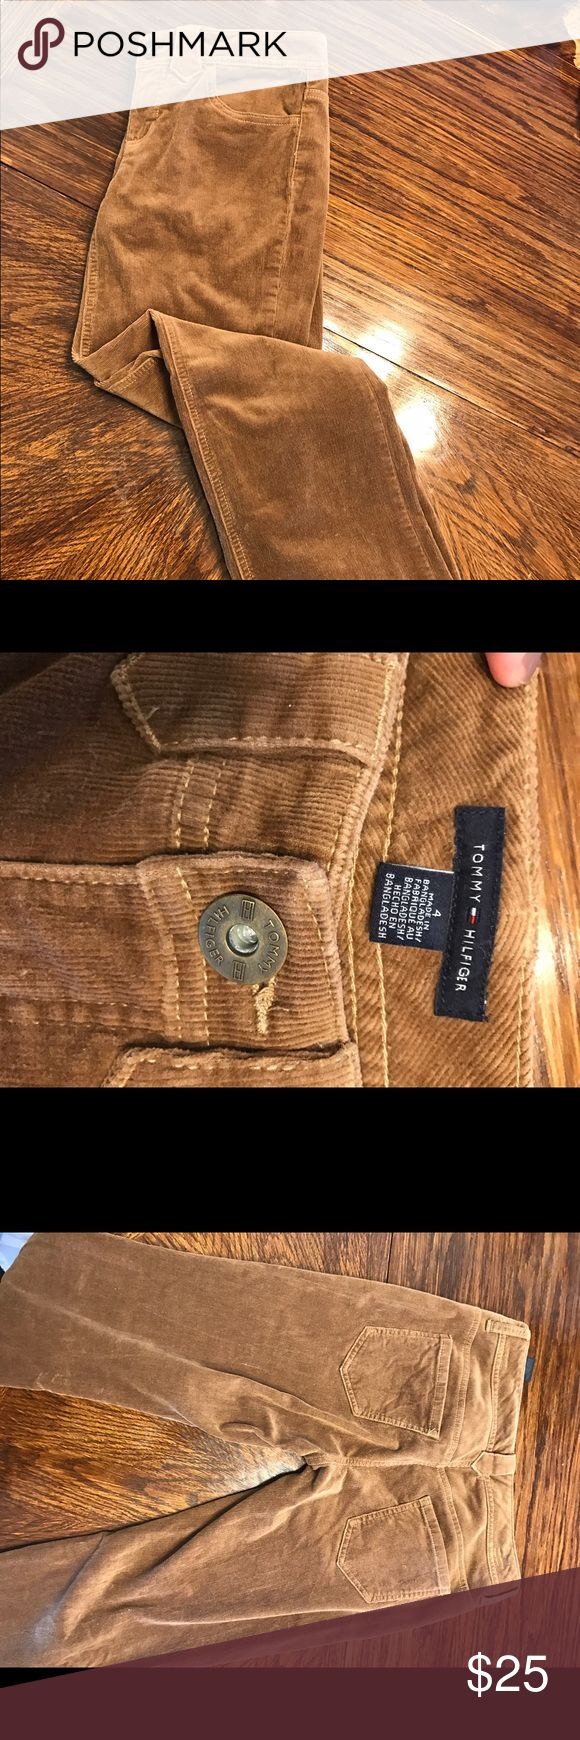 tommy hilfiger corduroy pants Trendy corduroy pants from Tommy Hilfiger. Look adorable with a Jean jacket. Tommy Hilfiger Pants Straight Leg